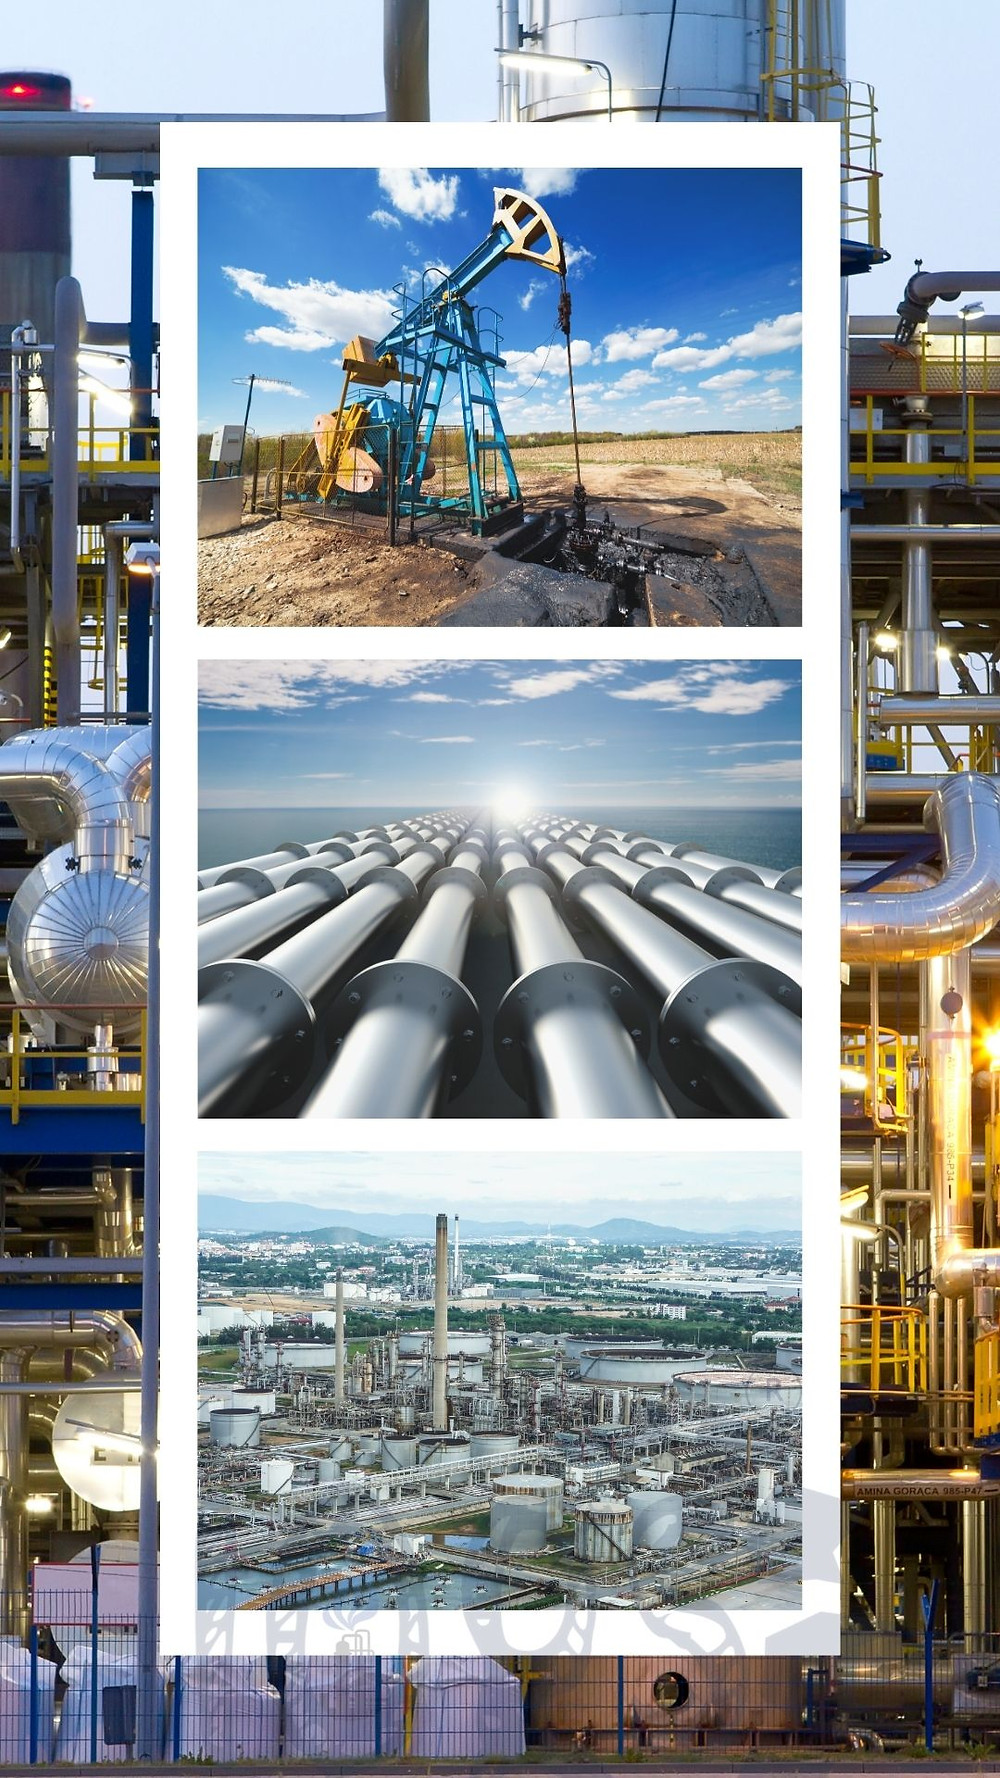 Career in Oil and Gas